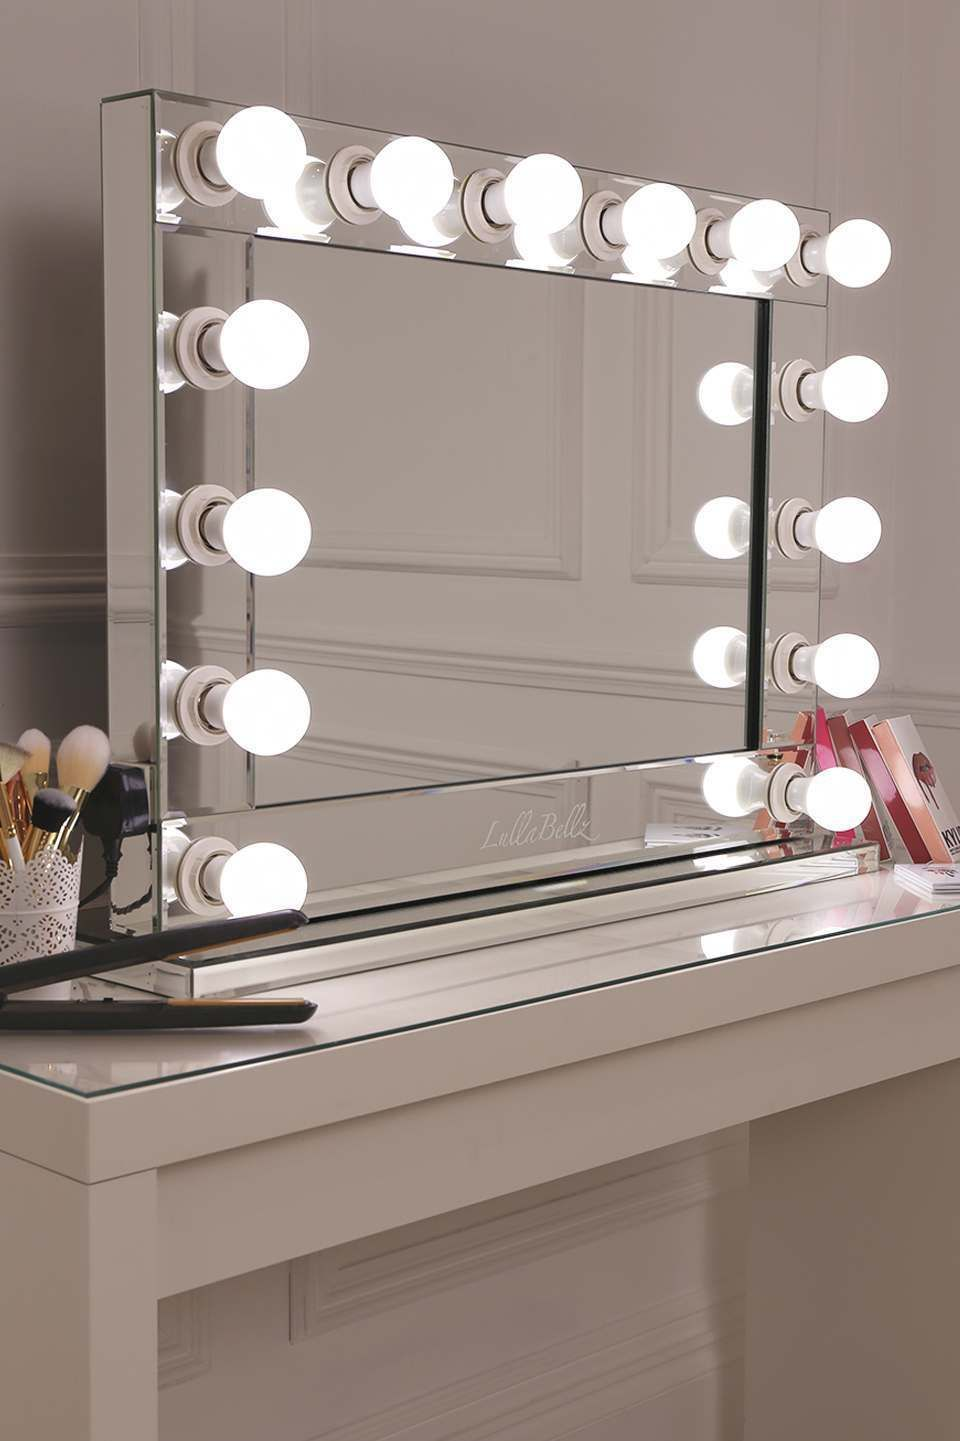 Vanity Mirror With Led Light Bulbs Around It To Sit On Your Dressing Table Or Wall Diy Vanity Mirror Makeup Vanity Mirror With Lights Makeup Mirror With Lights